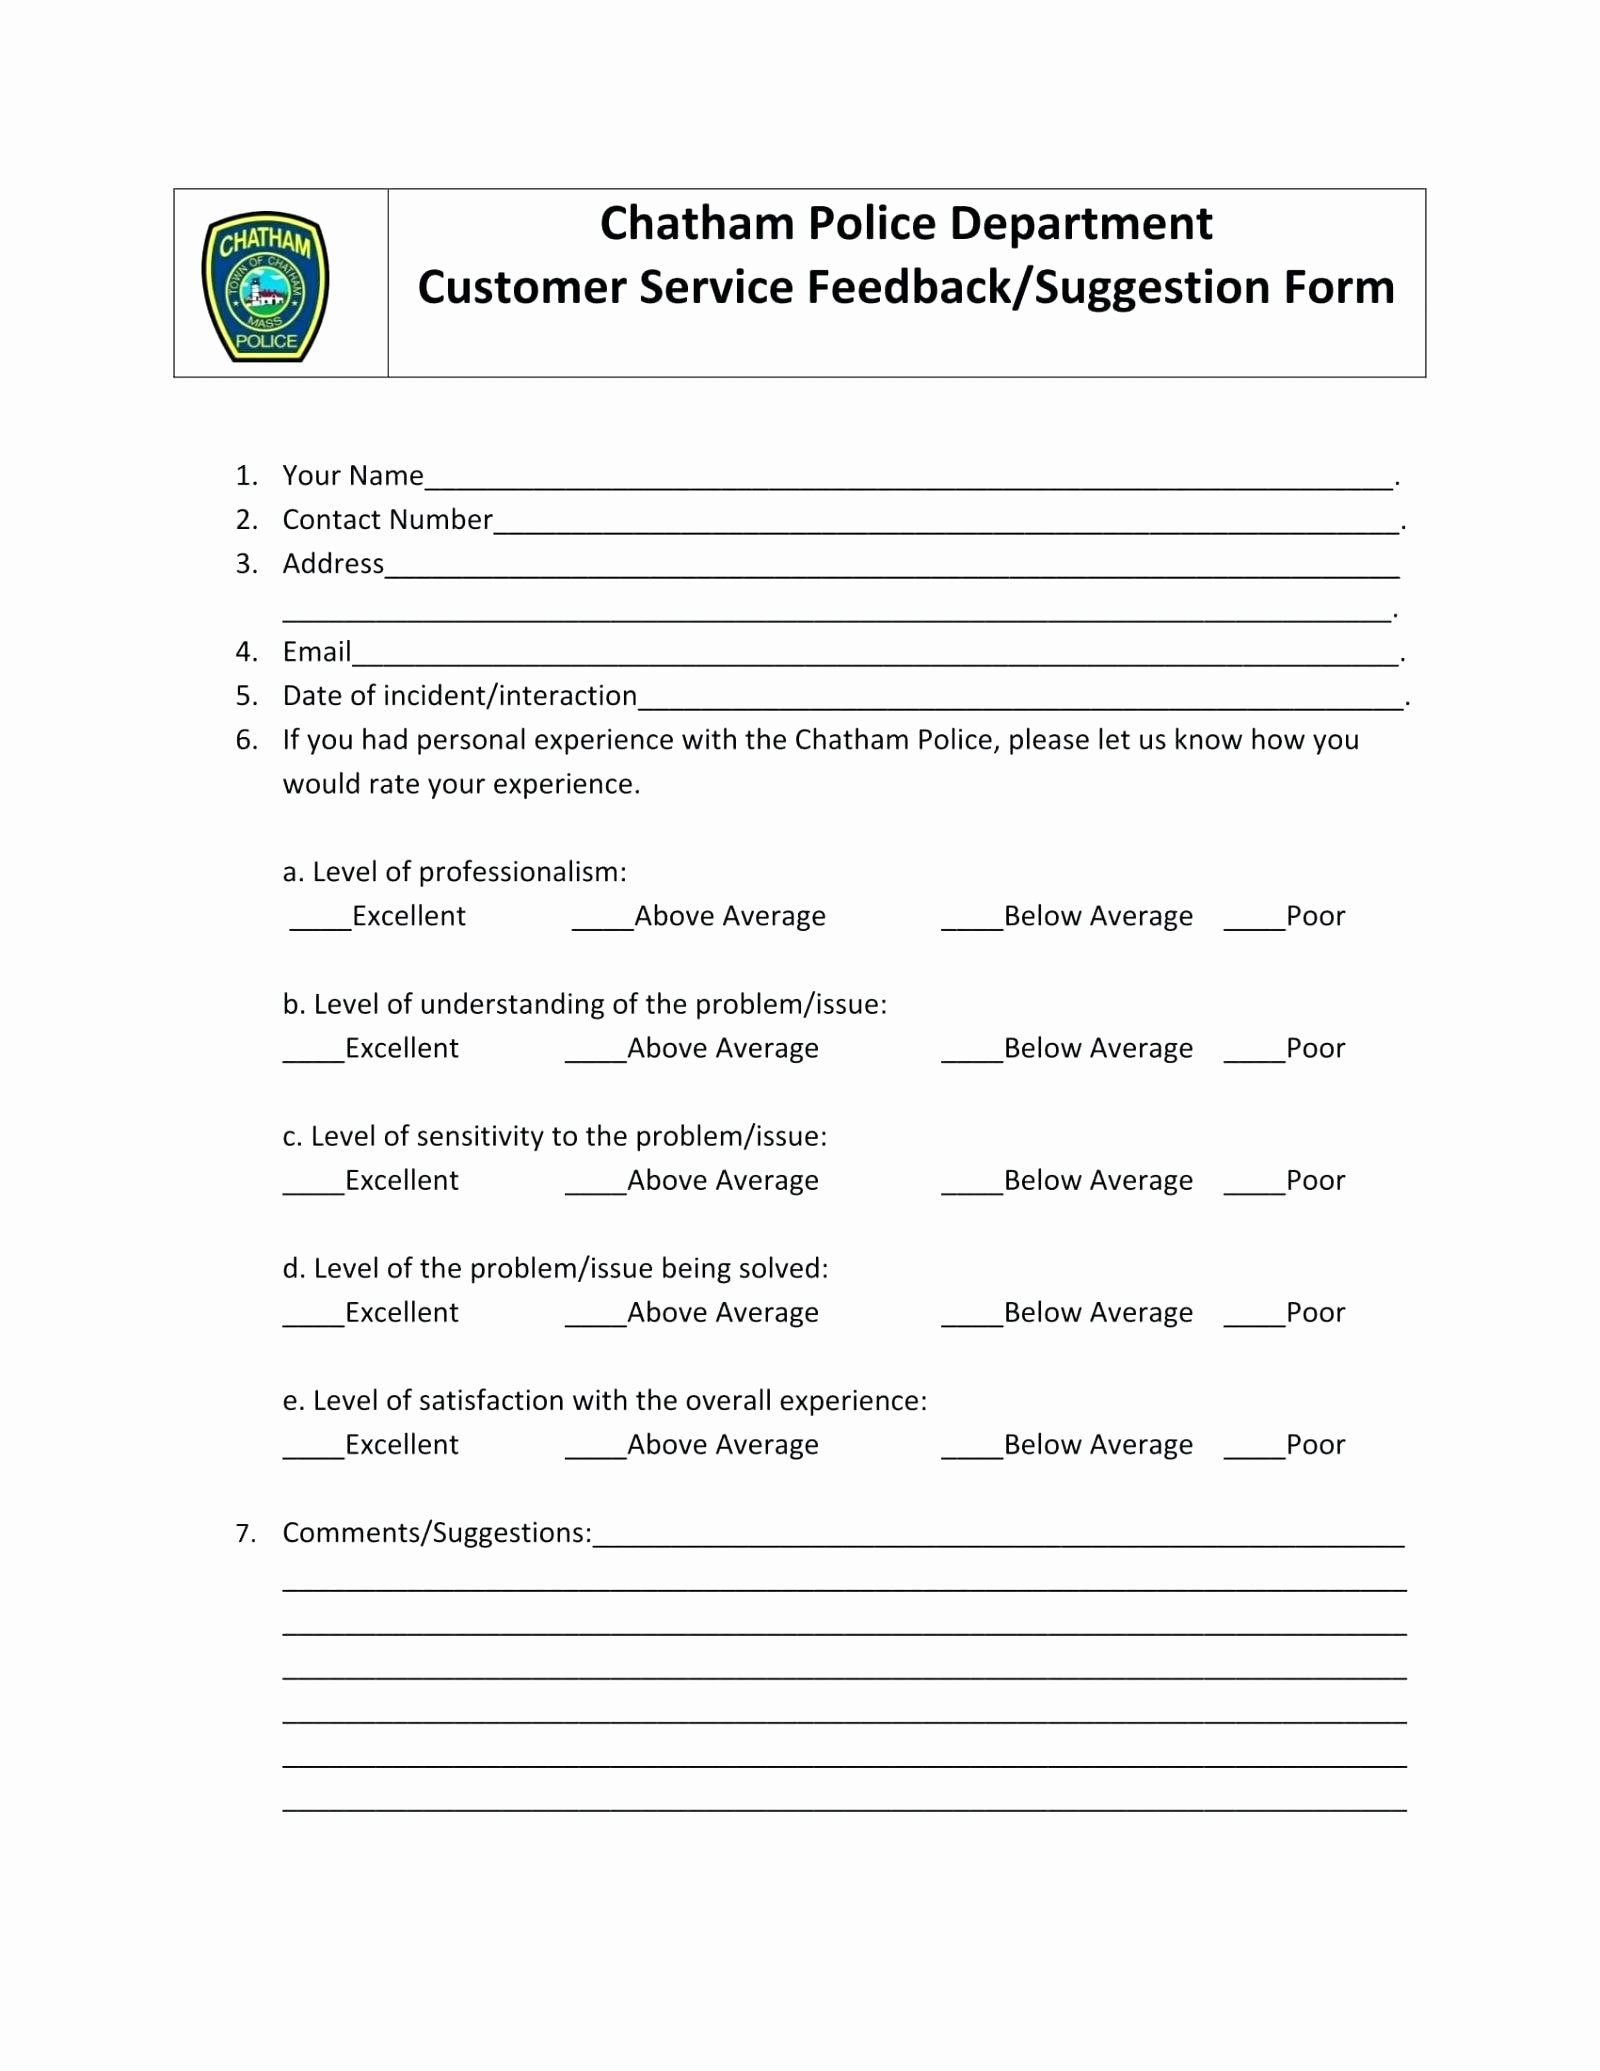 Customer Feedback form Template Word Luxury Template Customer Service Feedback Template